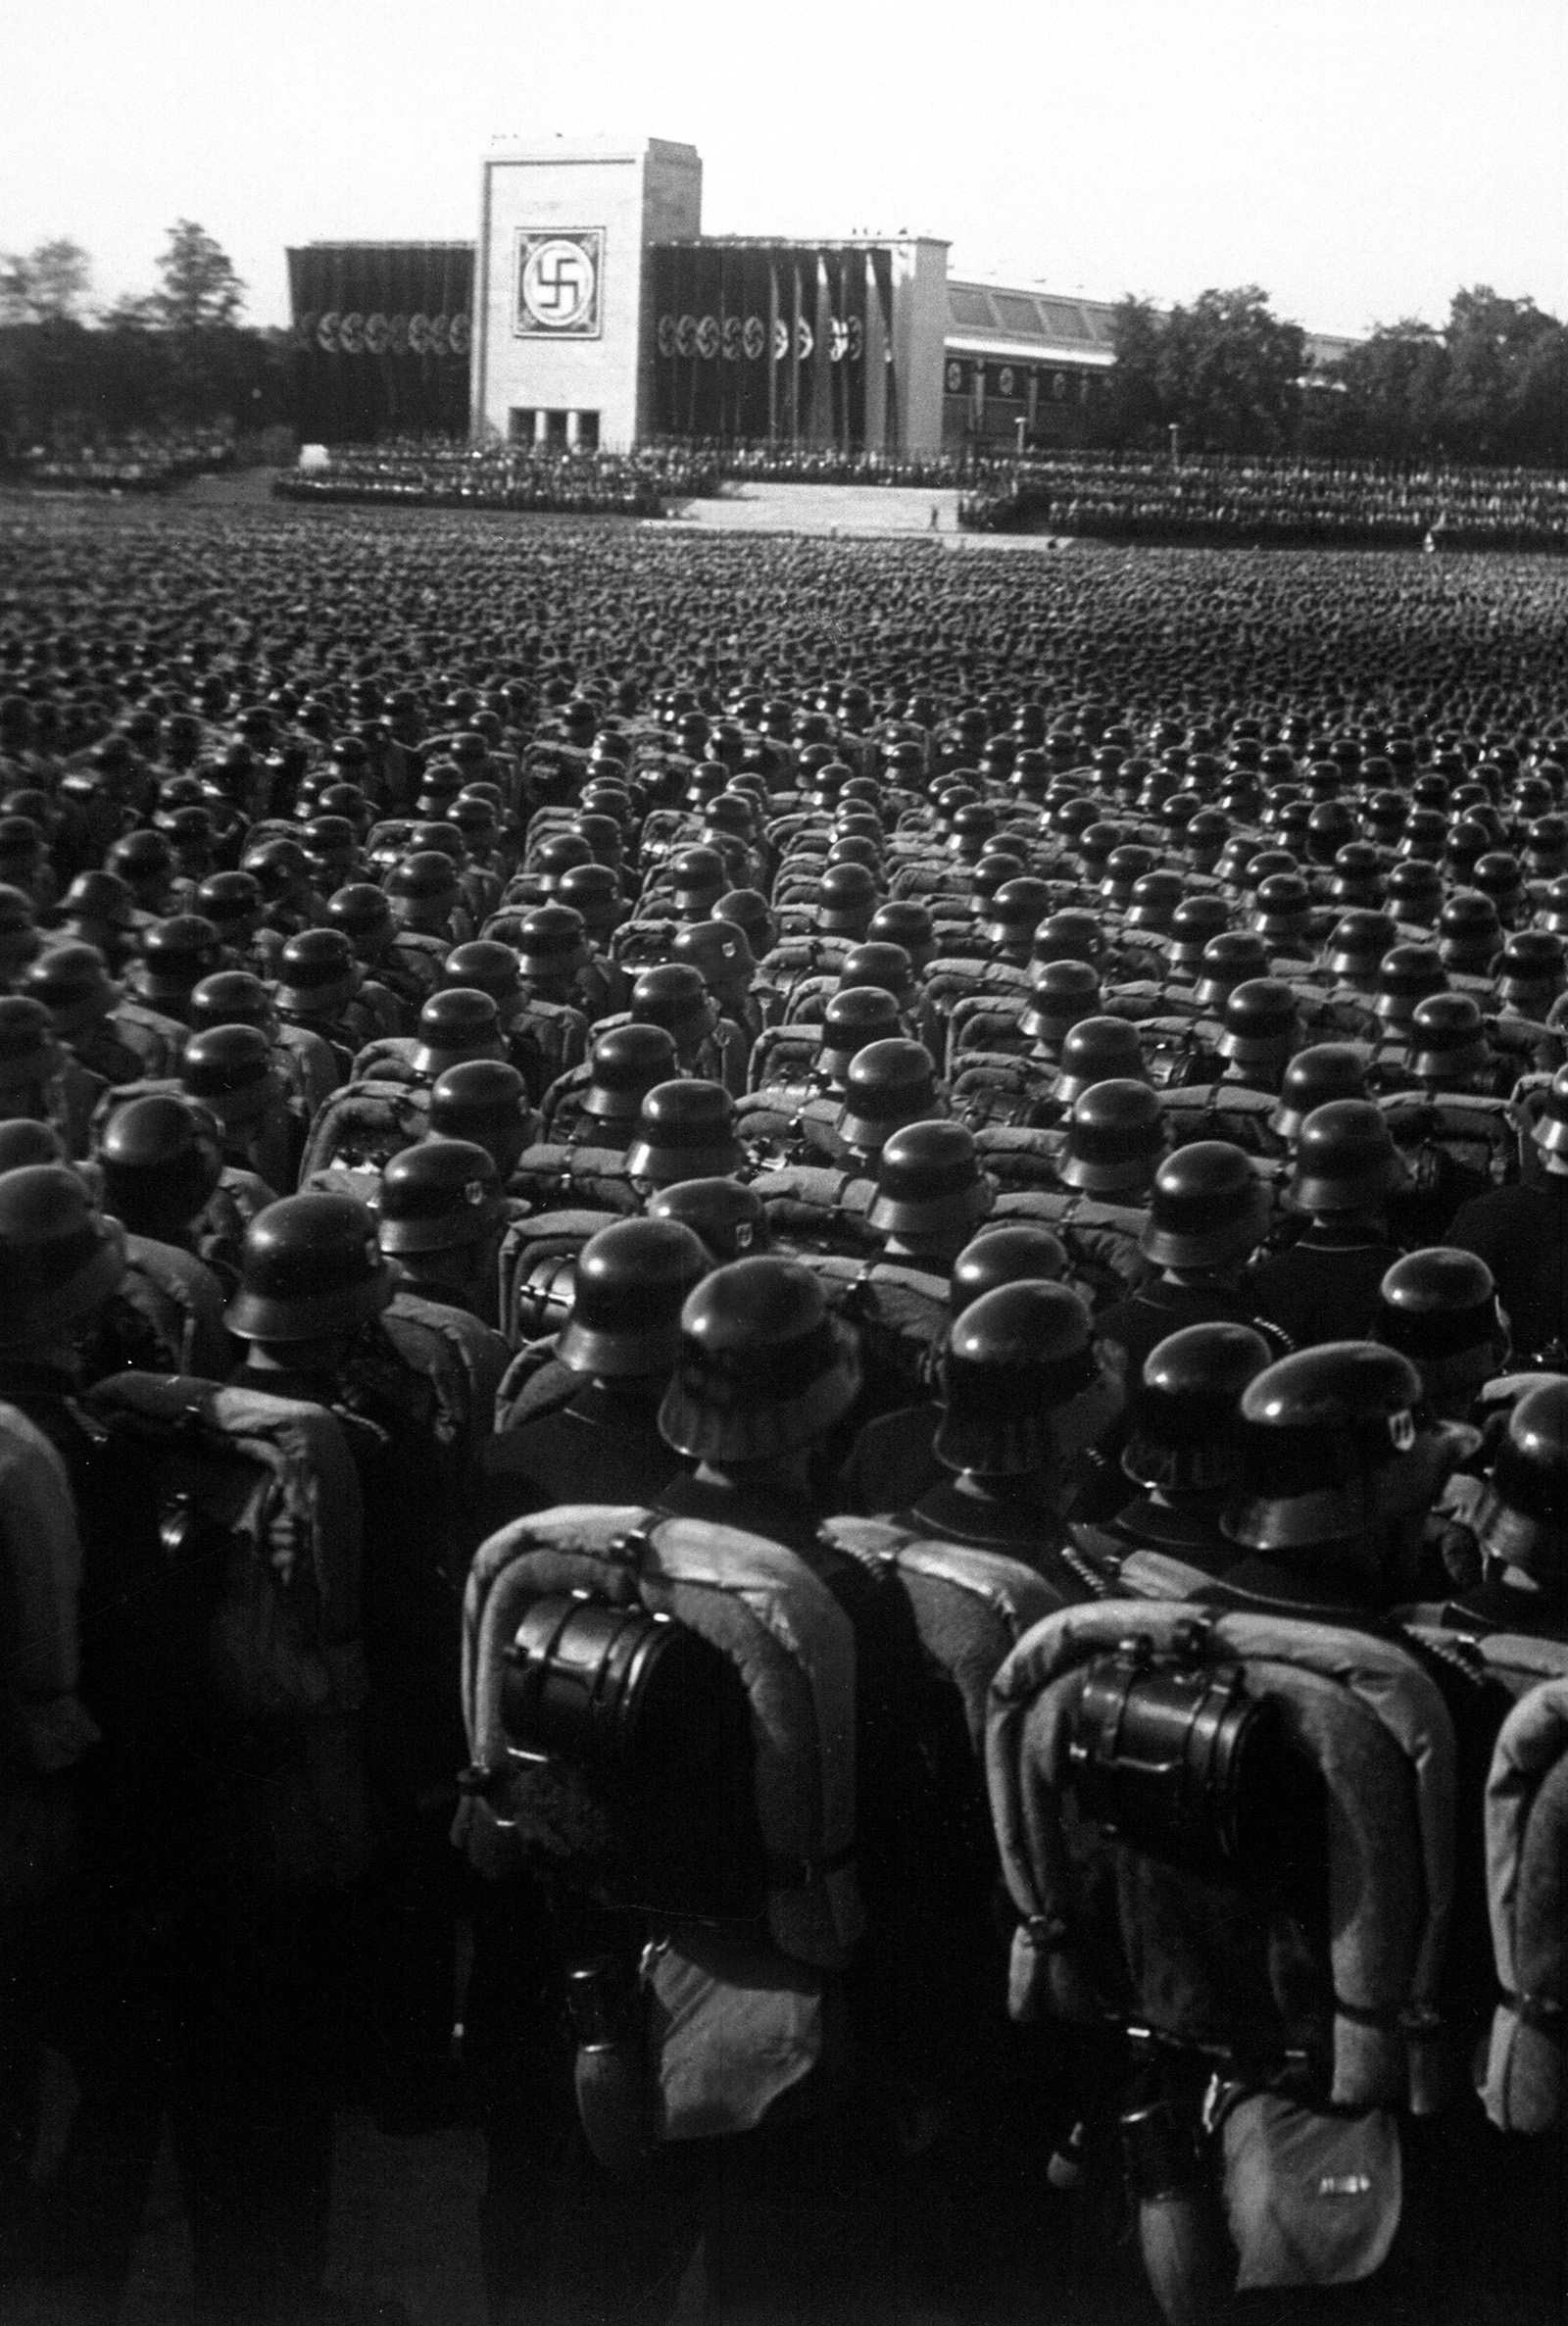 The origins of the european war us history ii american yawp thousands of soldiers in formation beneath a sign bearing the nazi symbol buycottarizona